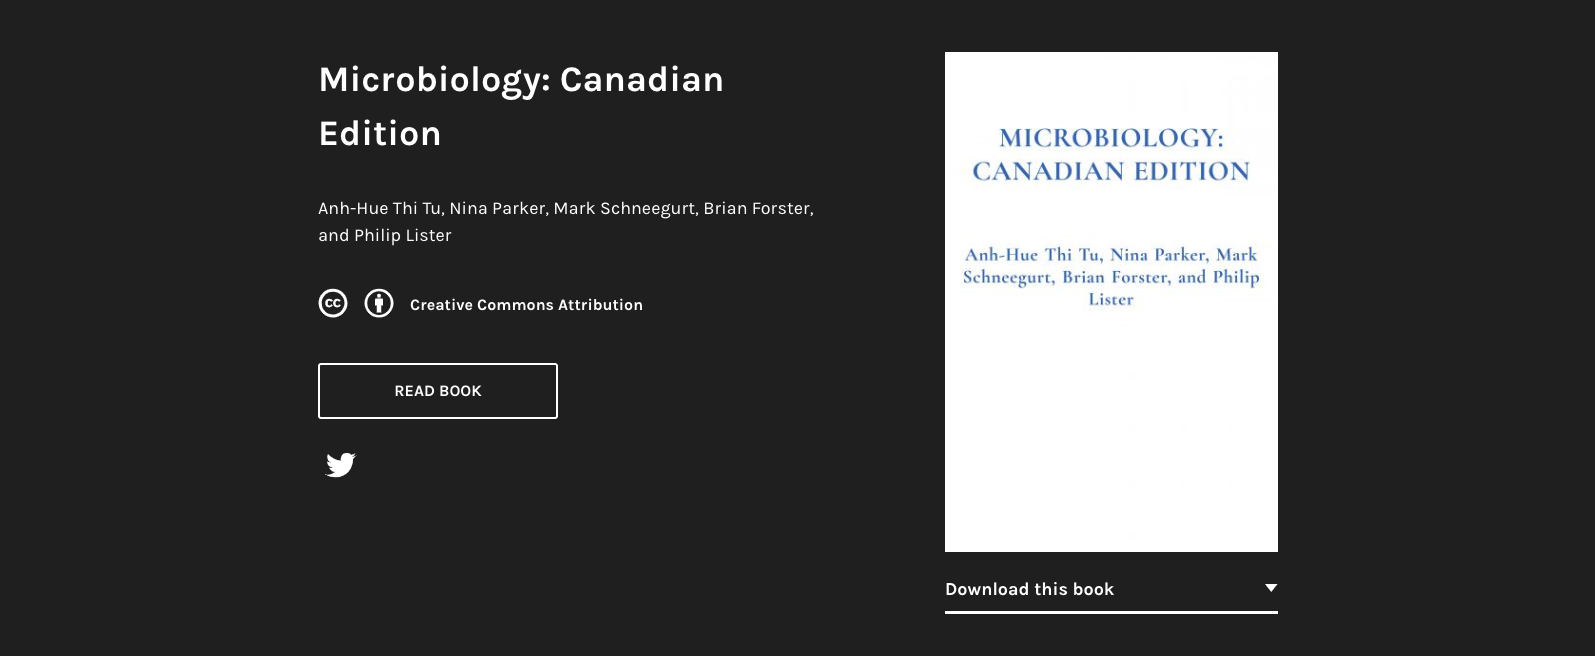 Screenshot of a black and white webpage showing a copy of the textbook, Microbiology: Canadian Edition